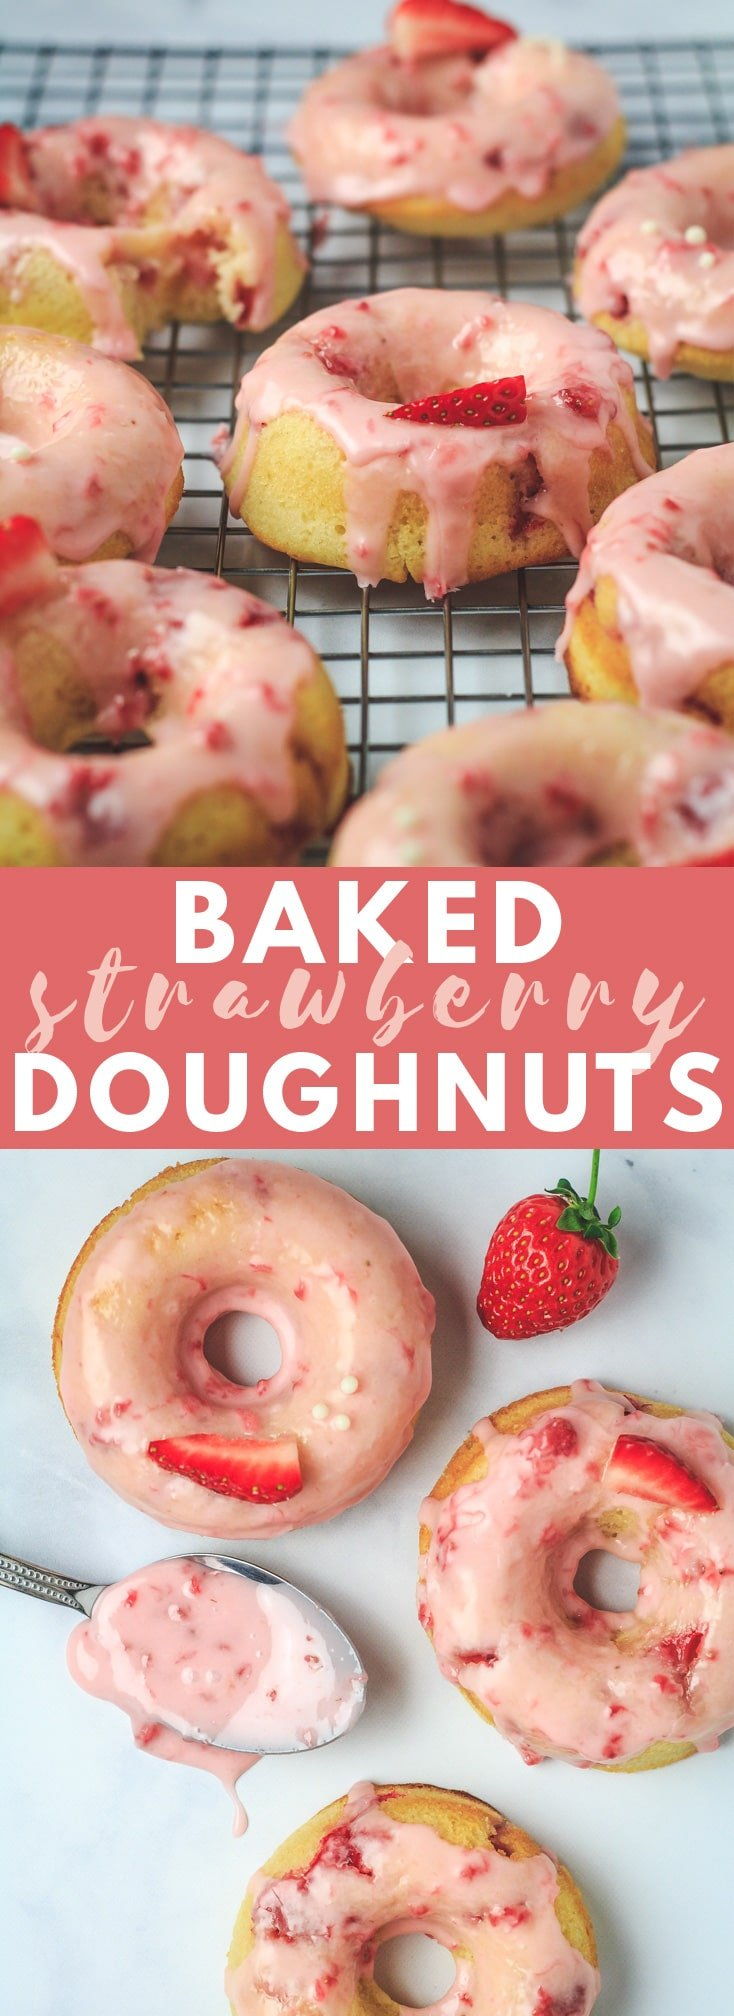 Baked Strawberry Doughnuts